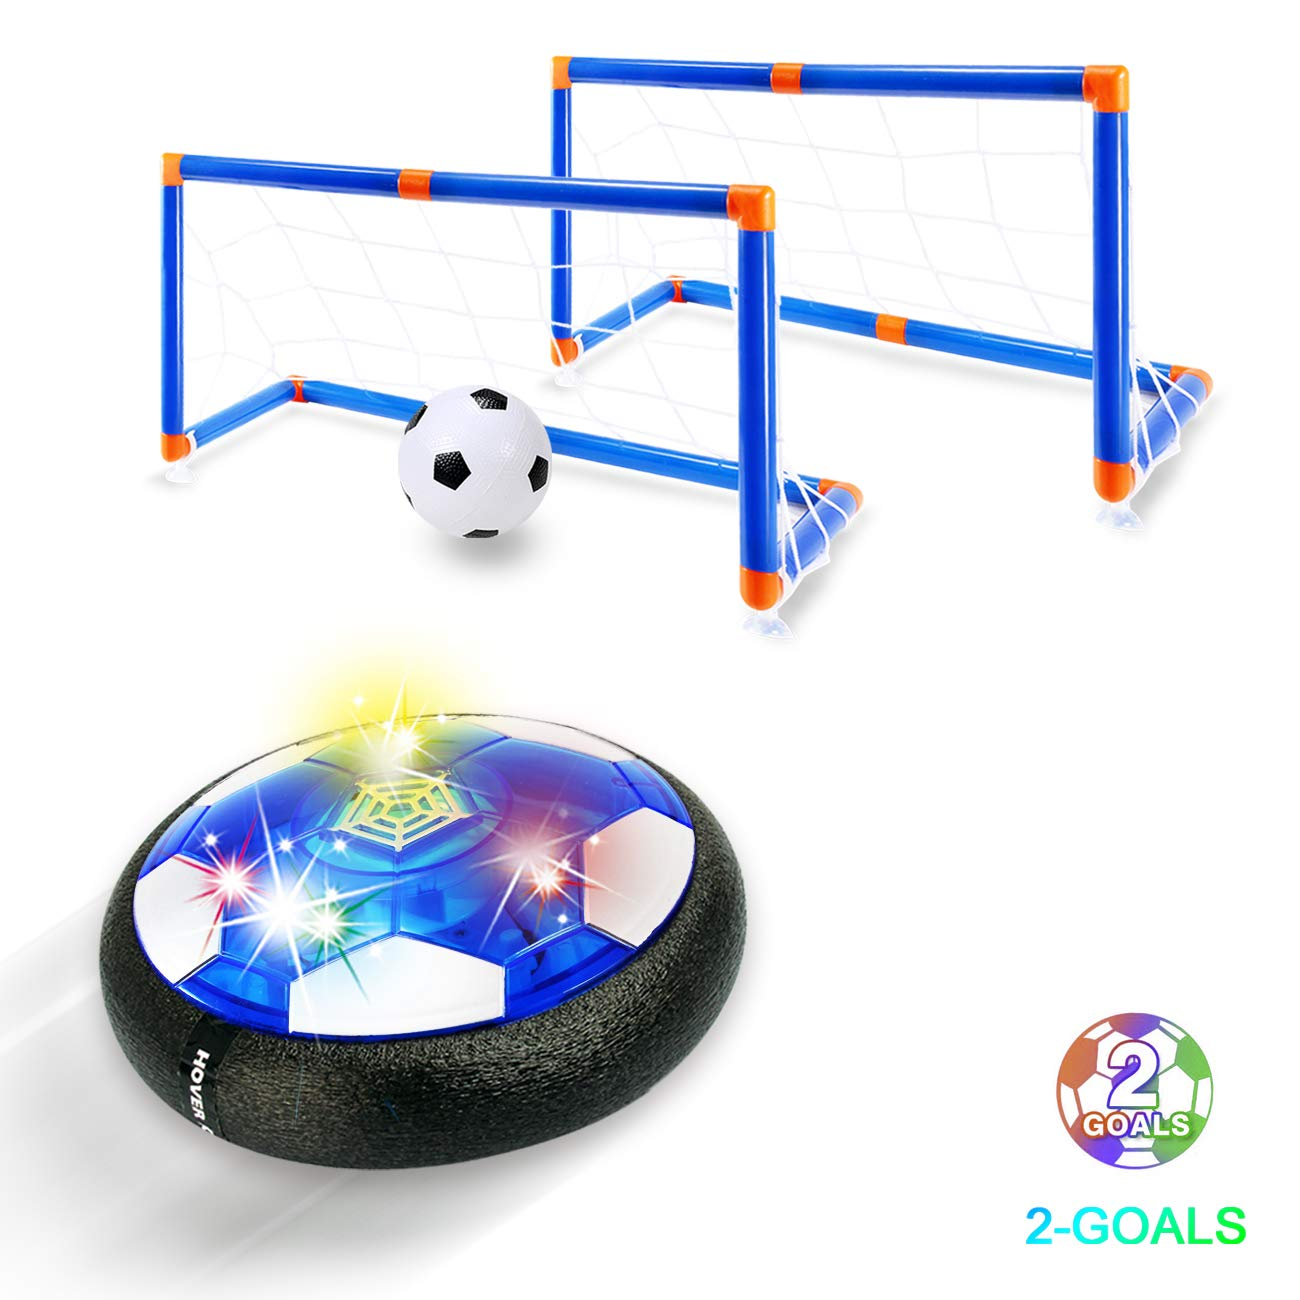 Kids Toys Hover Soccer Ball - 2019 Updated Rechargeable LED Air Power Soccer Set with 2 Goals and an Inflatable Ball, Indoor Toddler Toys for 3,4,5,6 -14 Year Old Boys Girls (Rechargeable Version) by FREE TO FLY